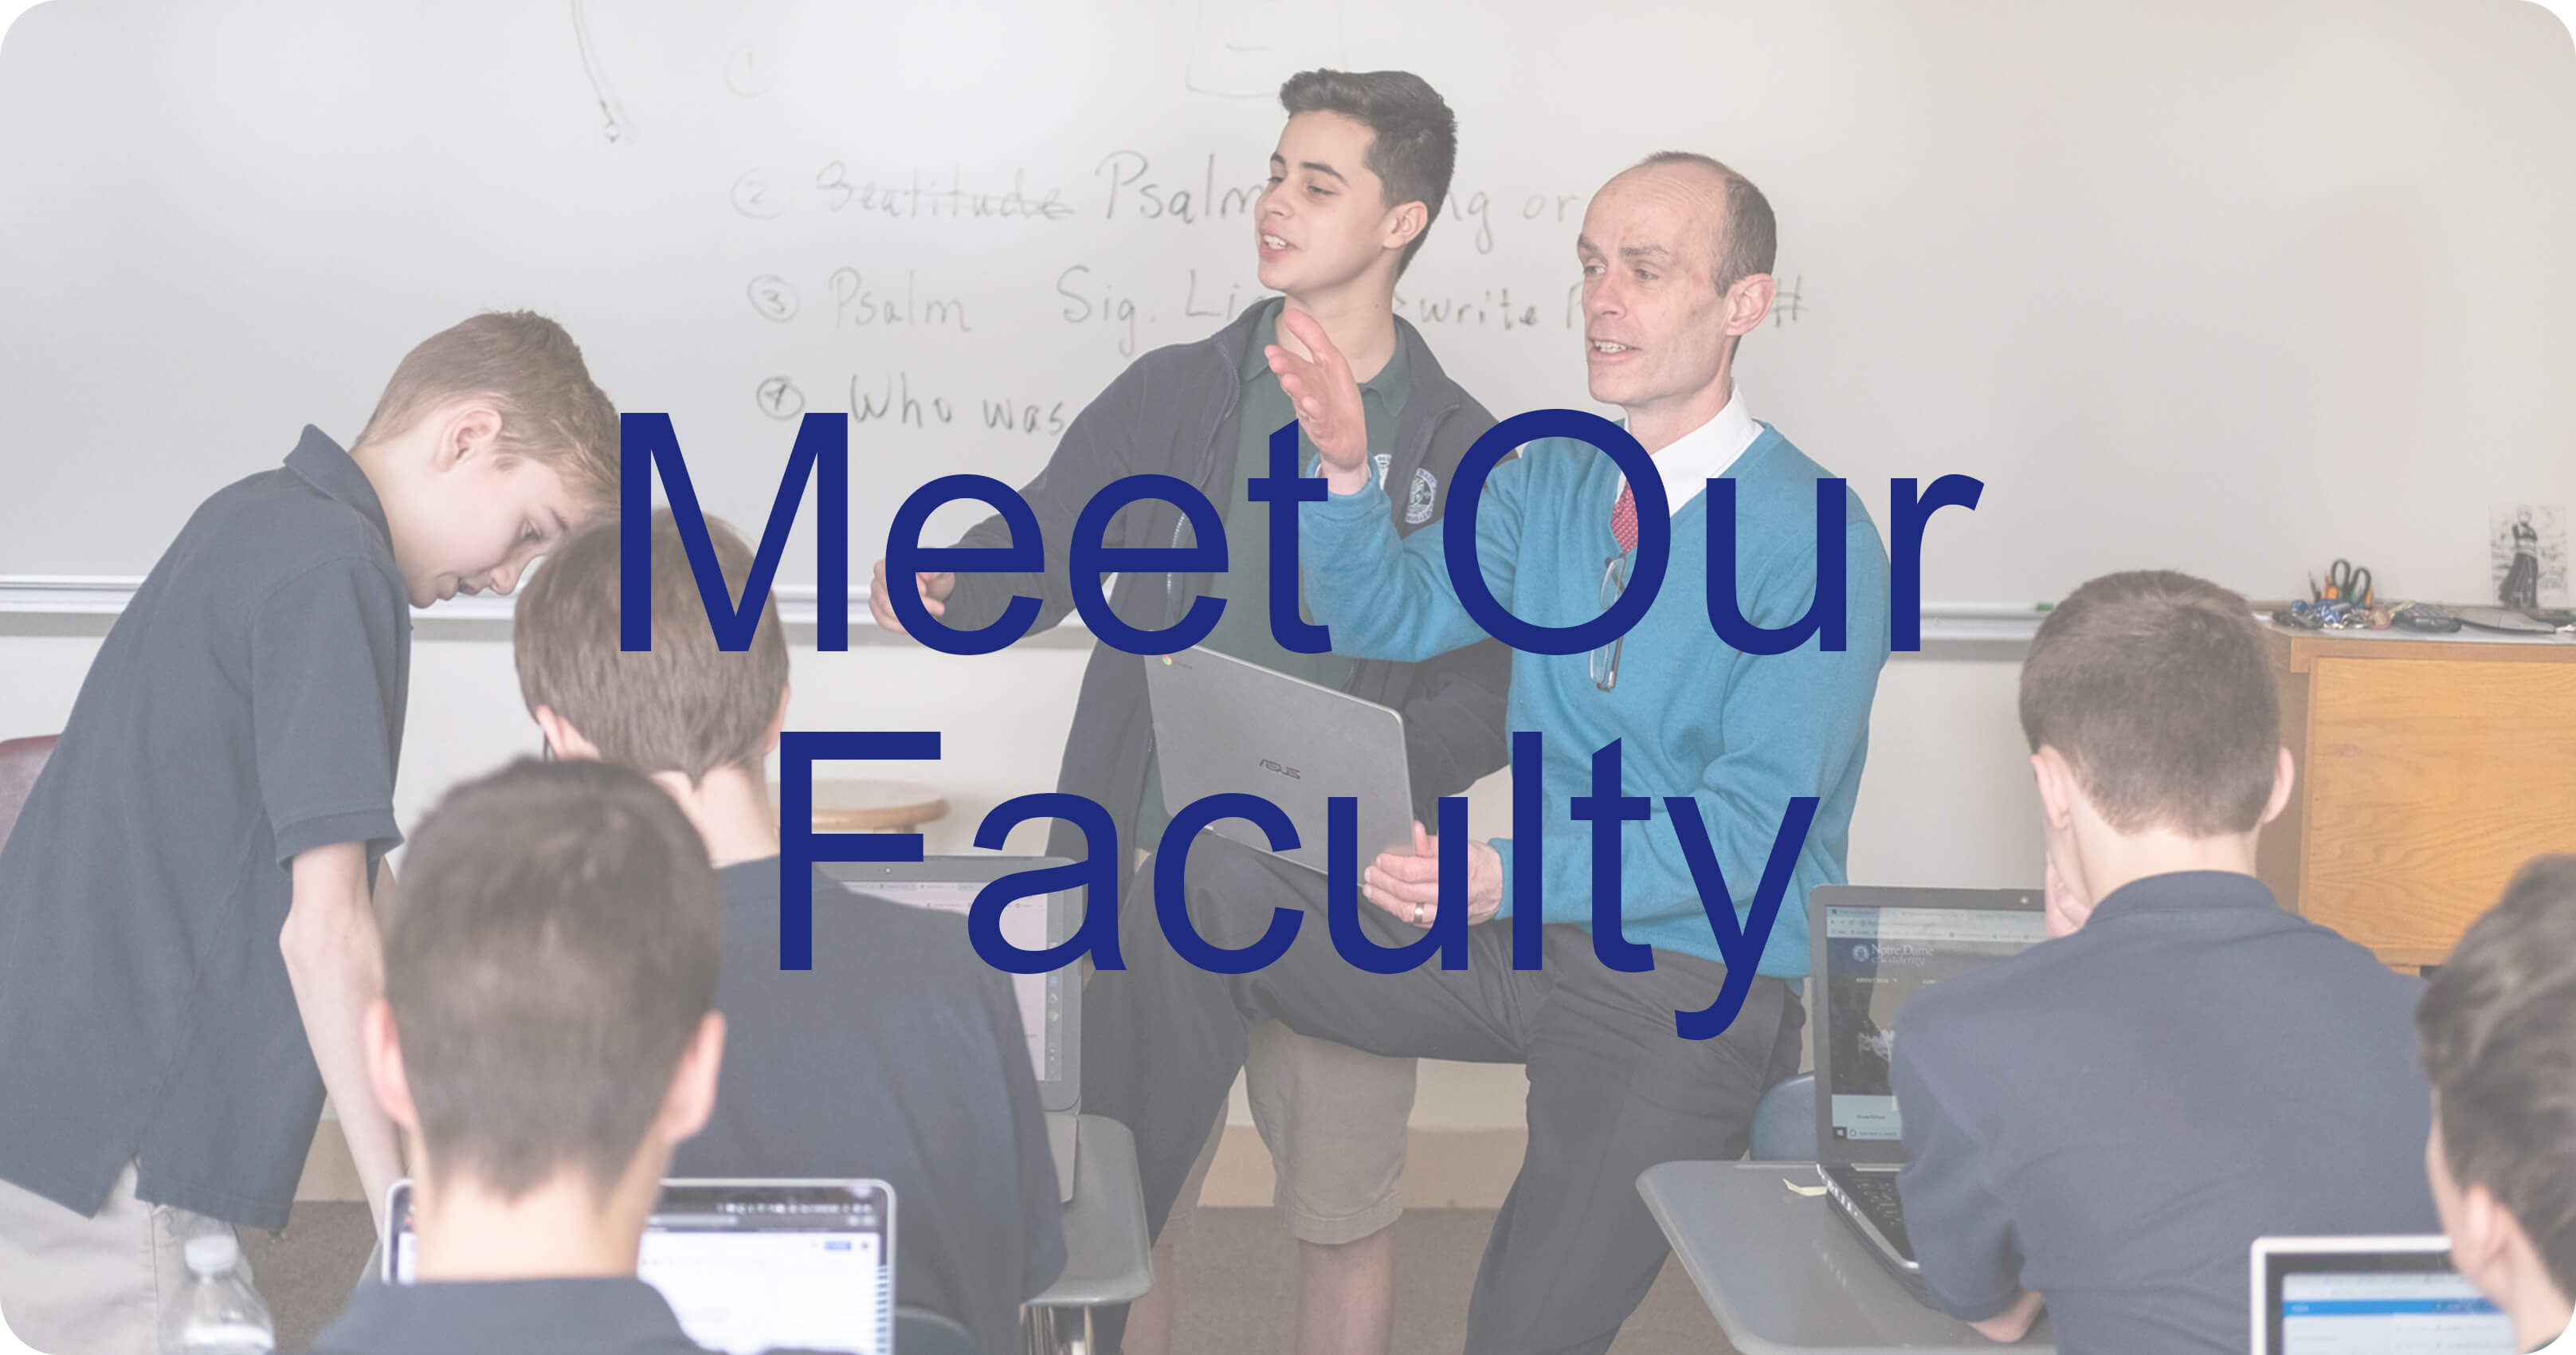 Photo of teacher talking with students with text over it saying Meet Our Faculty